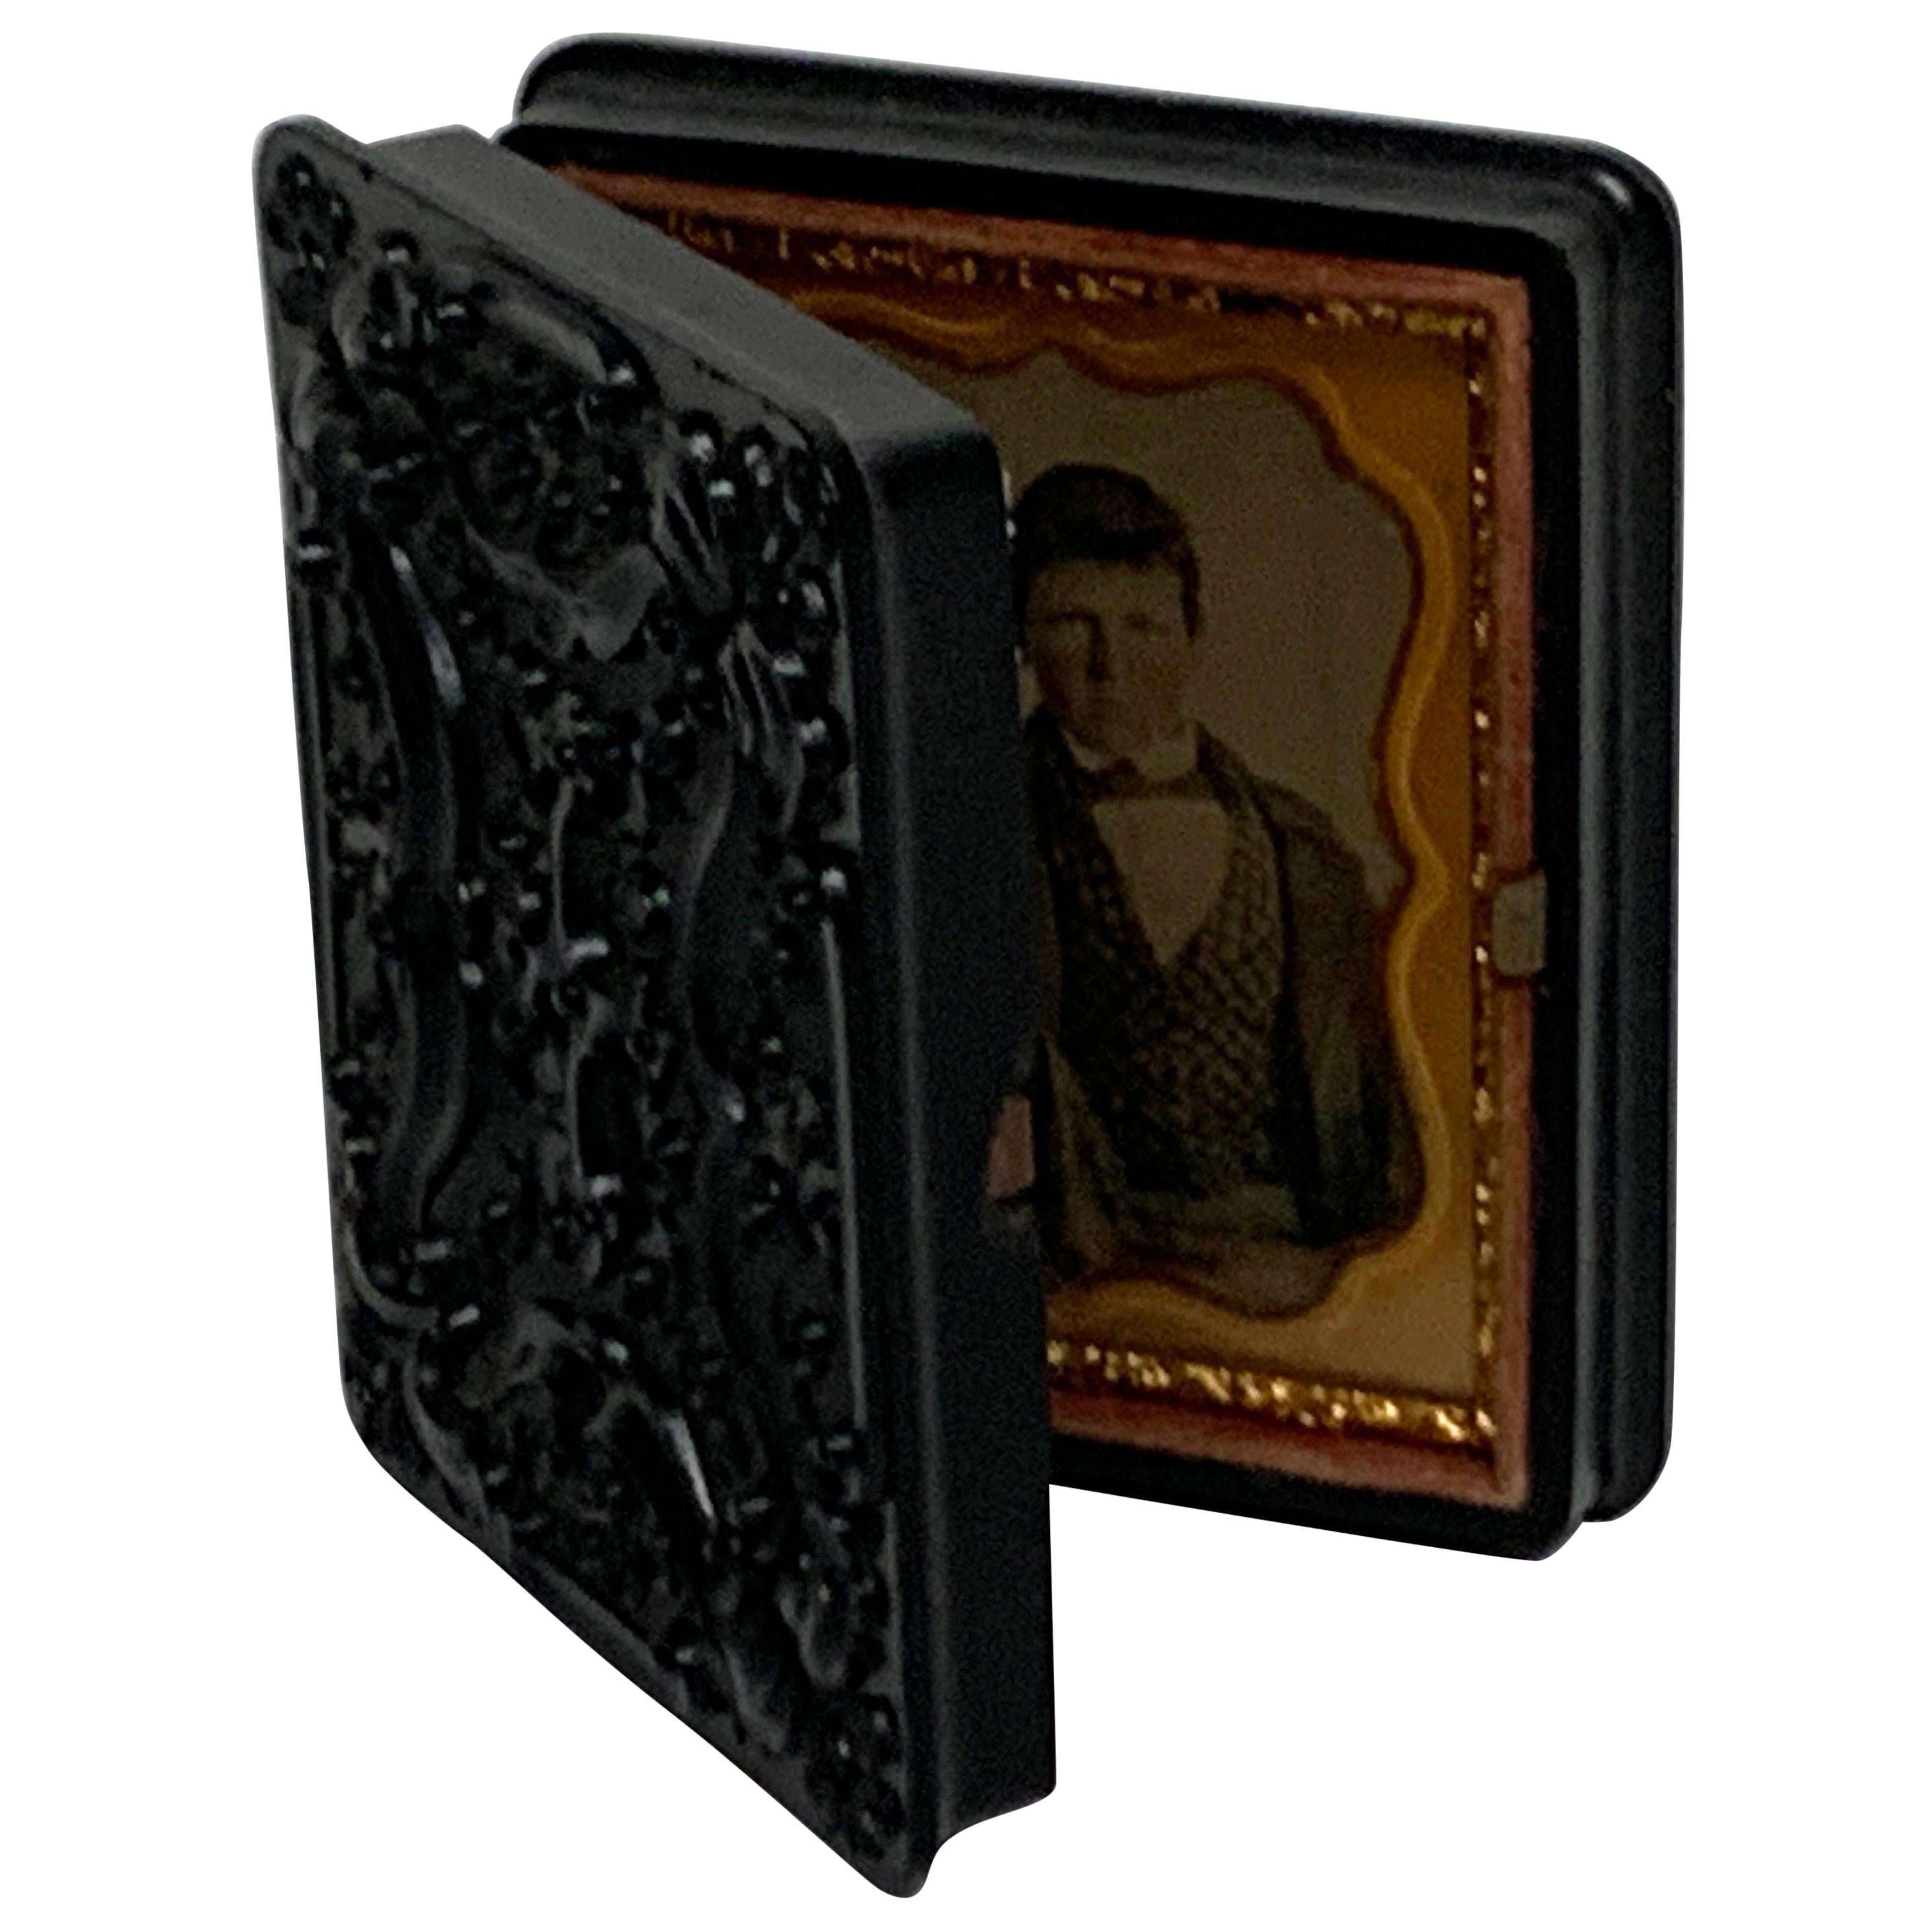 19th Century Ambrotype of a Young Male Student/ Writer, Gutta Percha Case